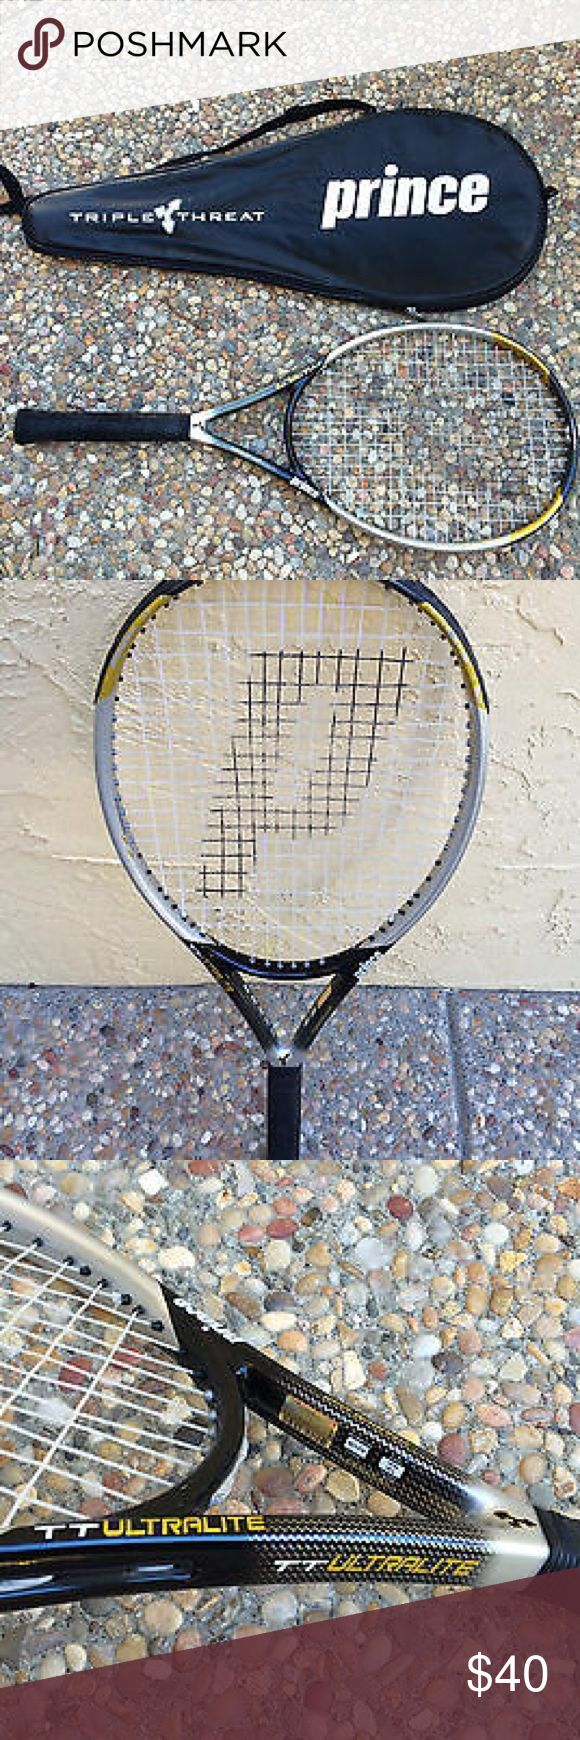 Prince triple threat ultra light tennis racquet Used once. Good condition. Ultra light, titanium shaft, expansion system, oversize. Needs the wrap on handle to be tightened. prince Other